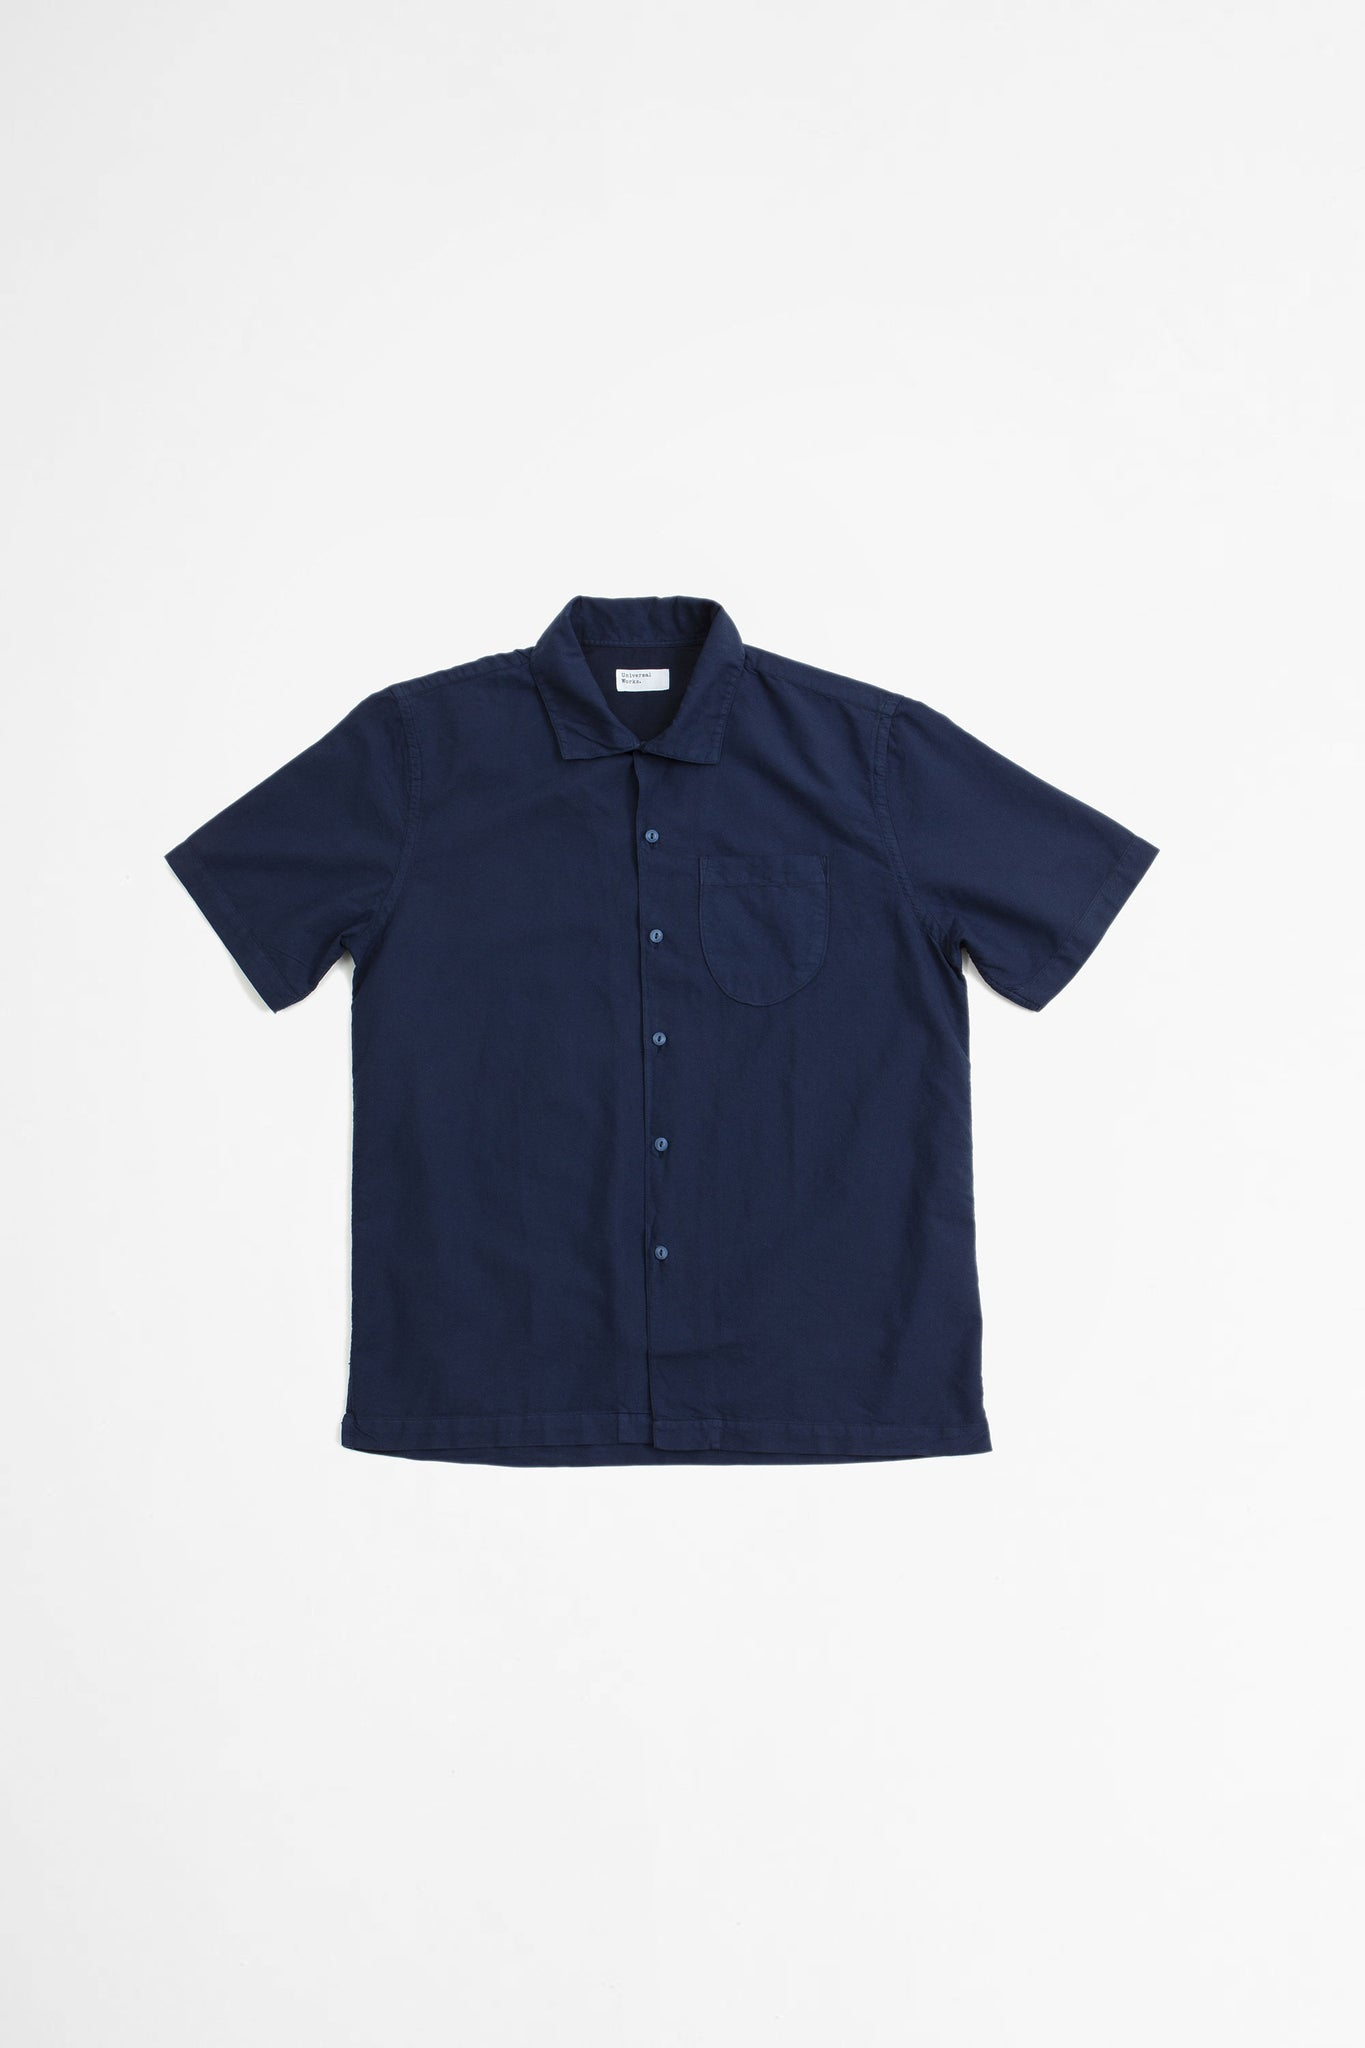 Open collar shirt oxford navy